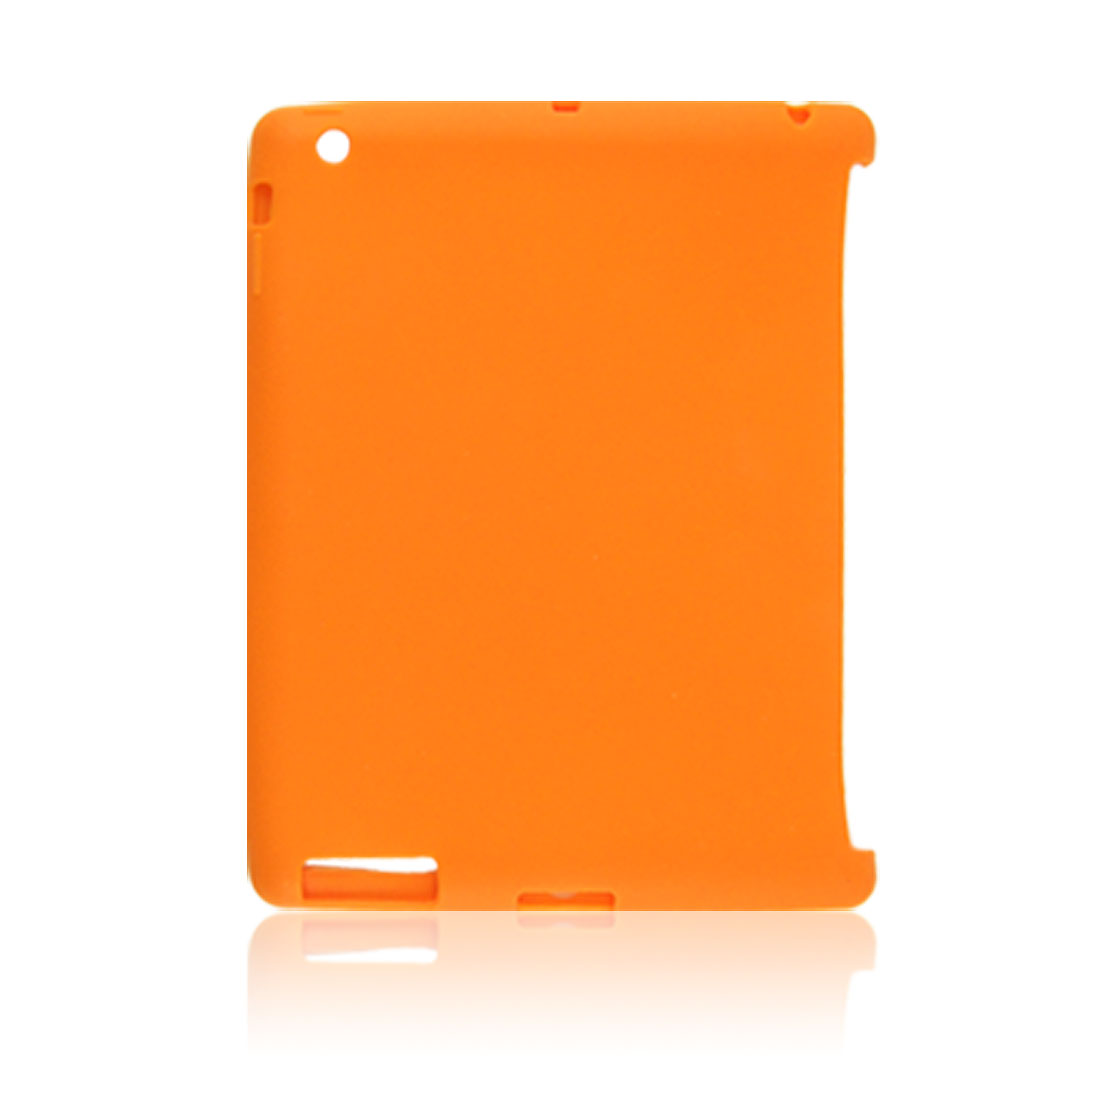 Protective Orange Soft Silicone Skin Cover for iPad 2nd Gen